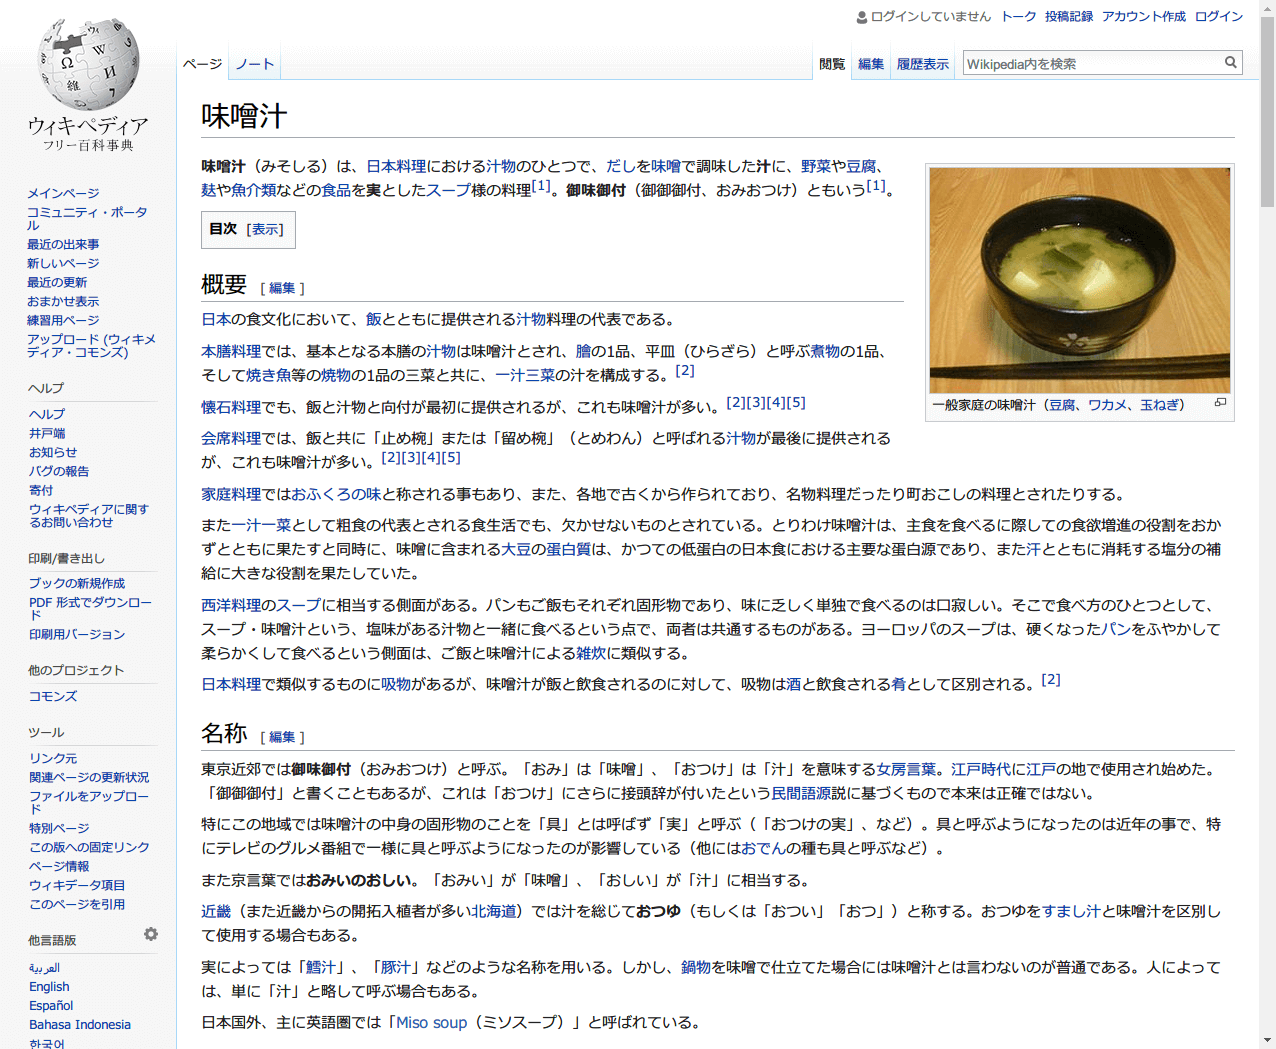 Cent Browser 2.5.6.57 64bit ポータブル版 試験運用版、DirectWrite #disable-direct-write 無効(DirectWrite 有効状態)、Wikipedia 味噌汁ページ